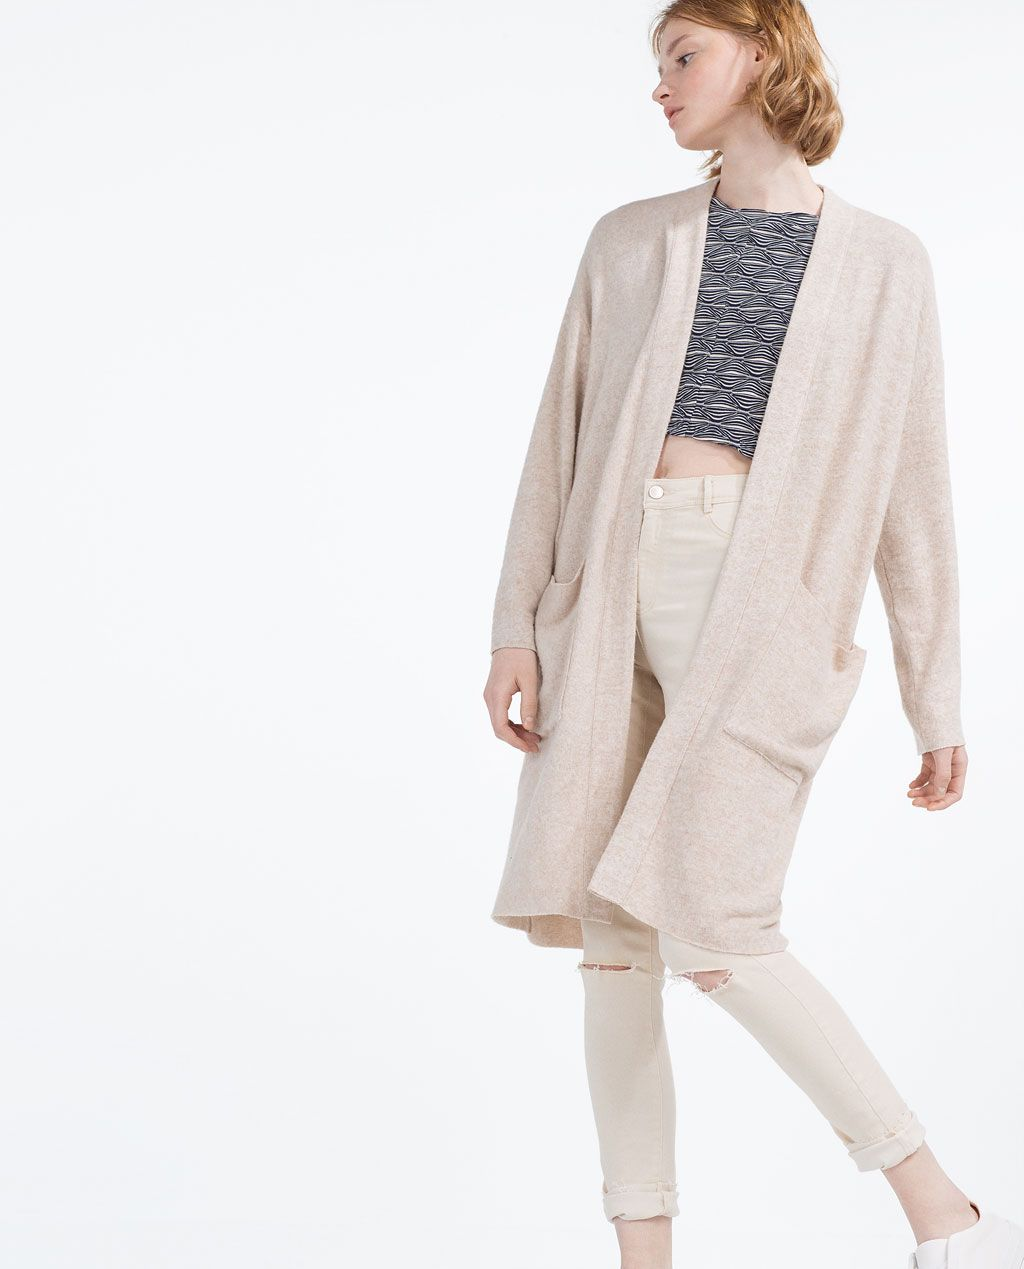 SOFT TOUCH CARDIGAN from Zara | What to wear | Pinterest | Ss